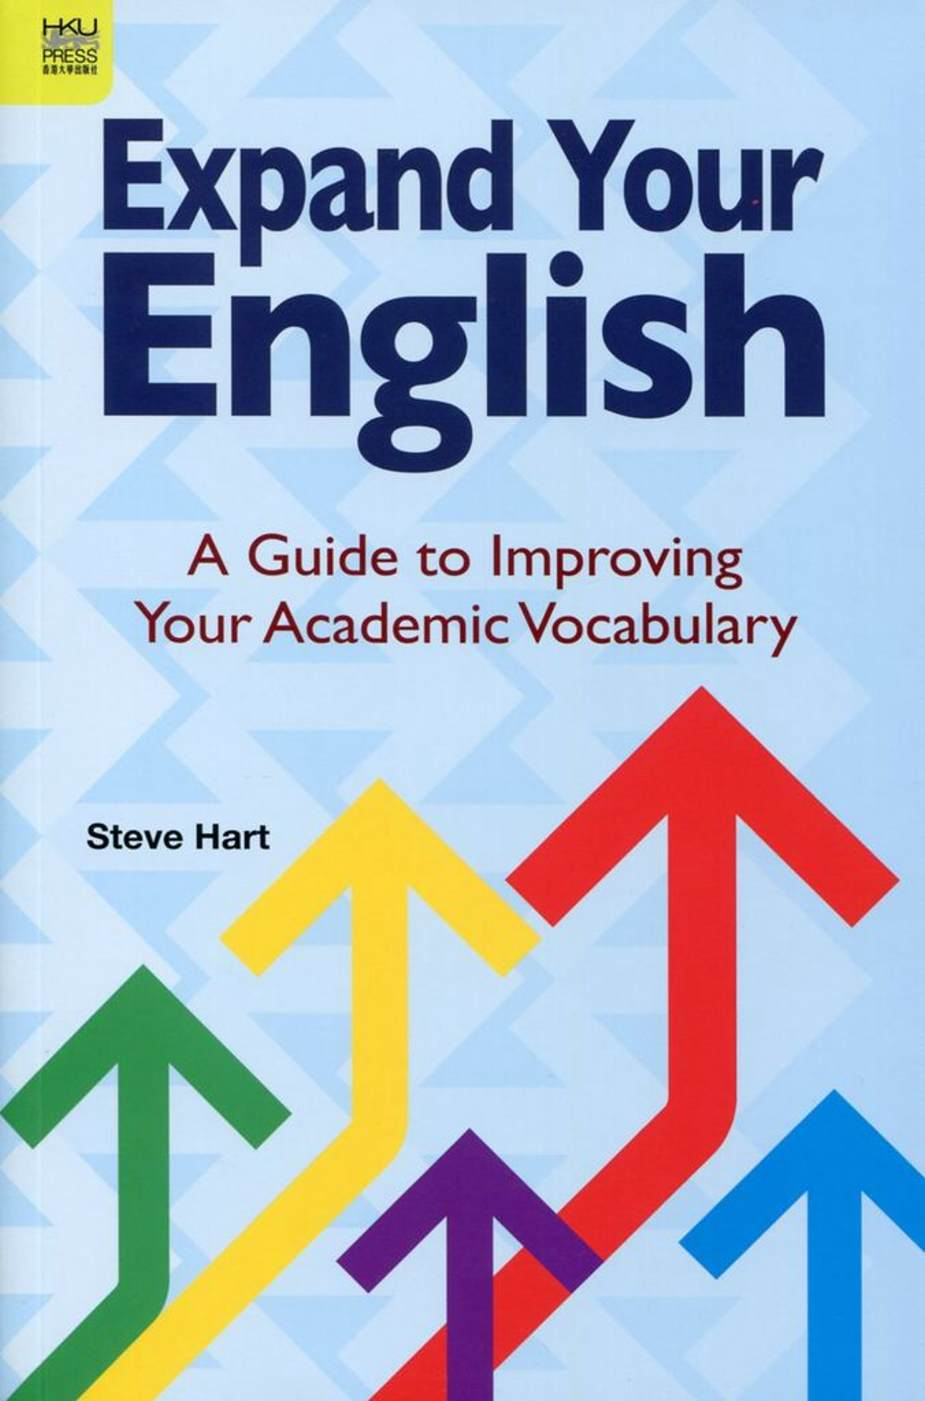 Expand Your English:A Guide to Improving Your Academic Vocabulary